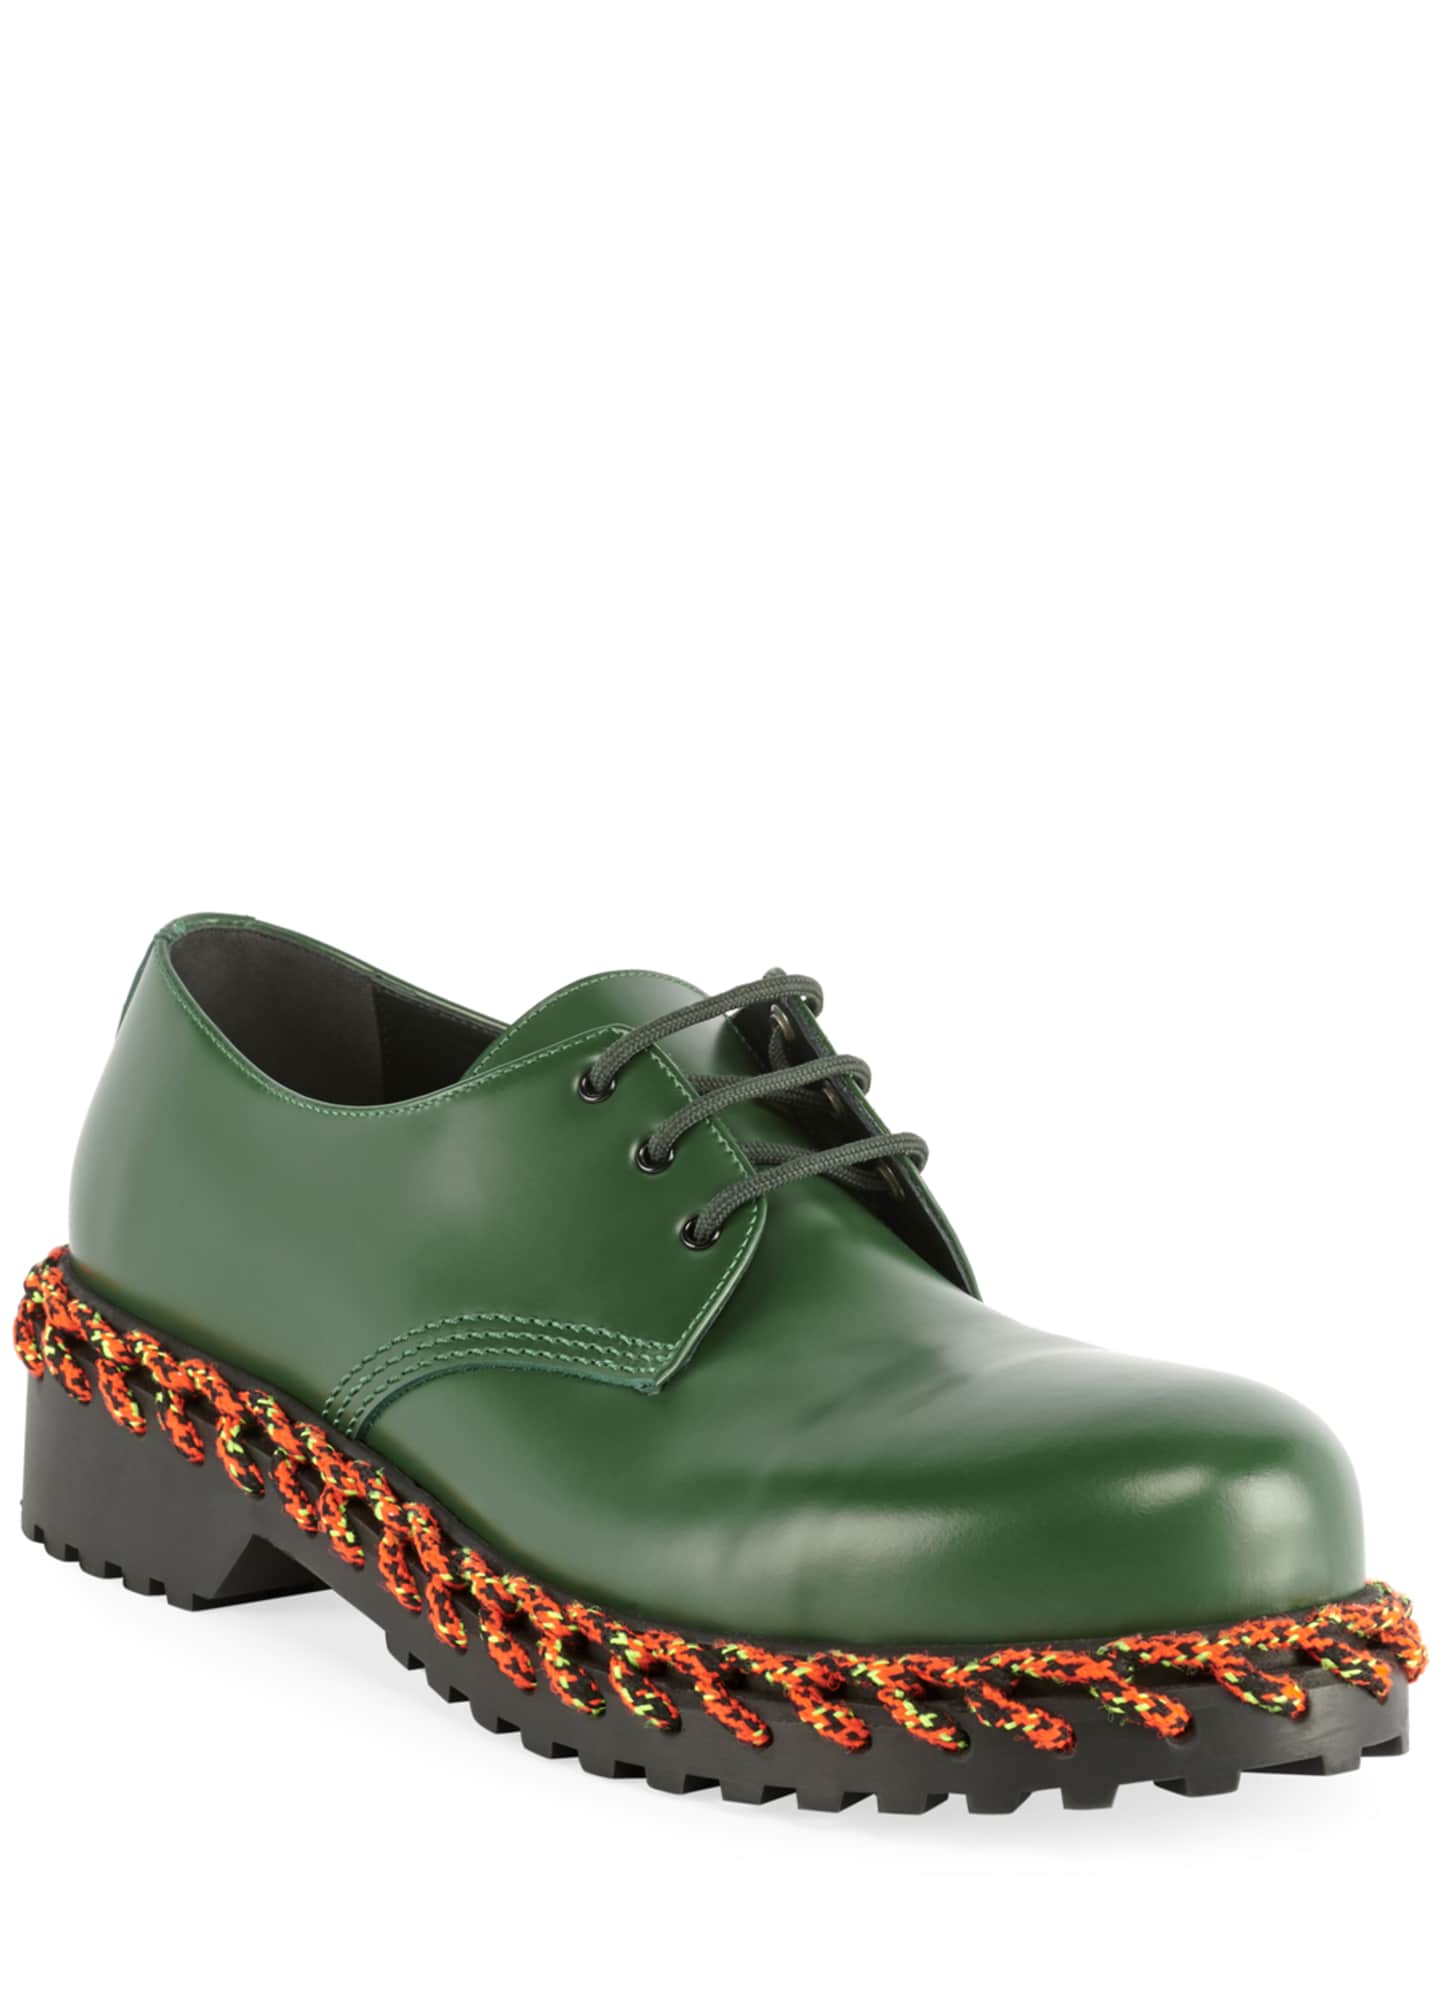 Image 1 of 3: Men's Braided Derby Shoes